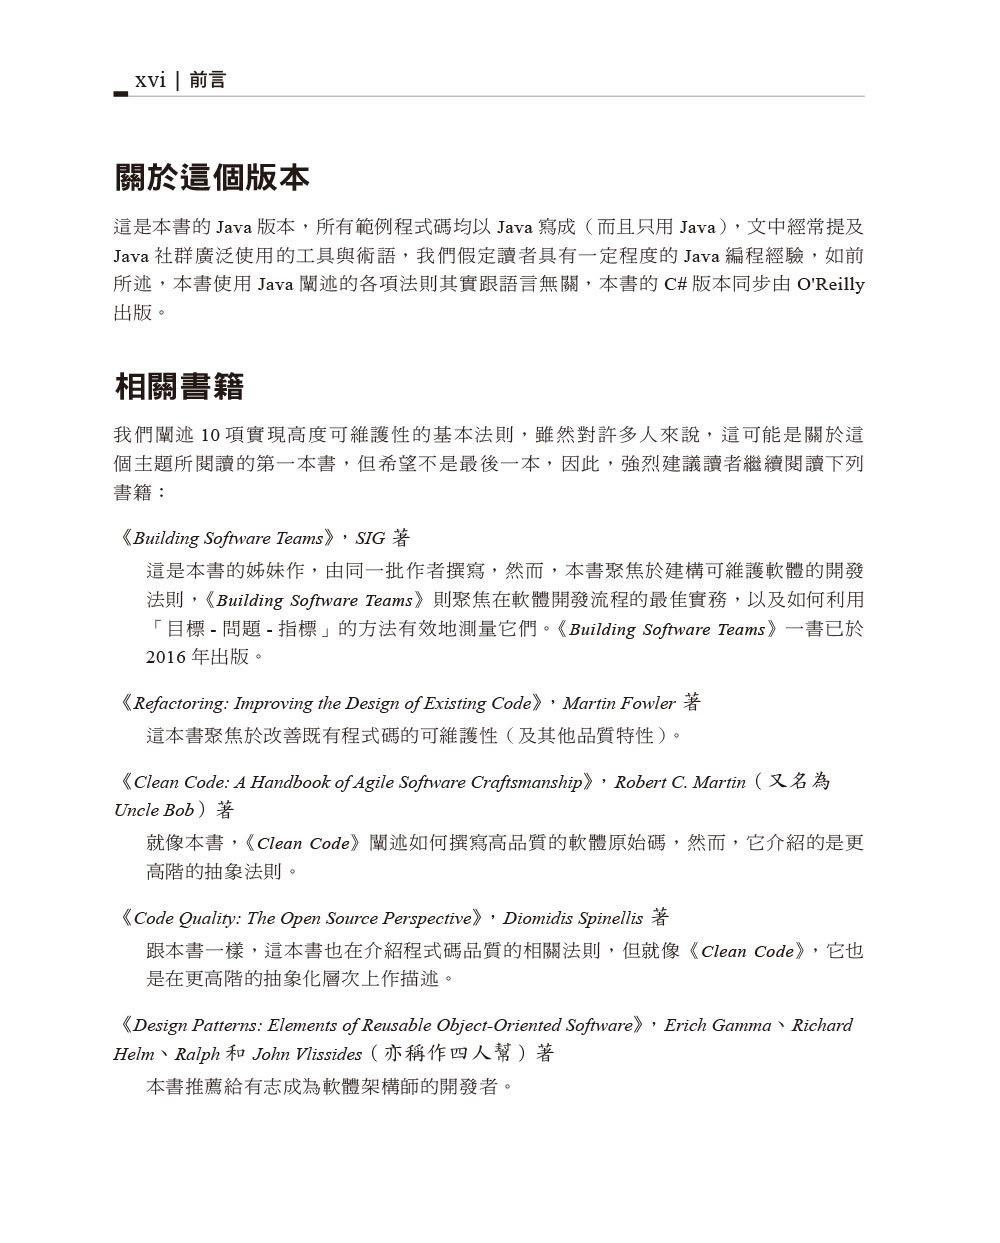 打造可維護軟體|編寫可維護程式碼的10項法則 (Java版) (Building Maintainable Software, Java Edition: Ten Guidelines for Future-Proof Code)-preview-6